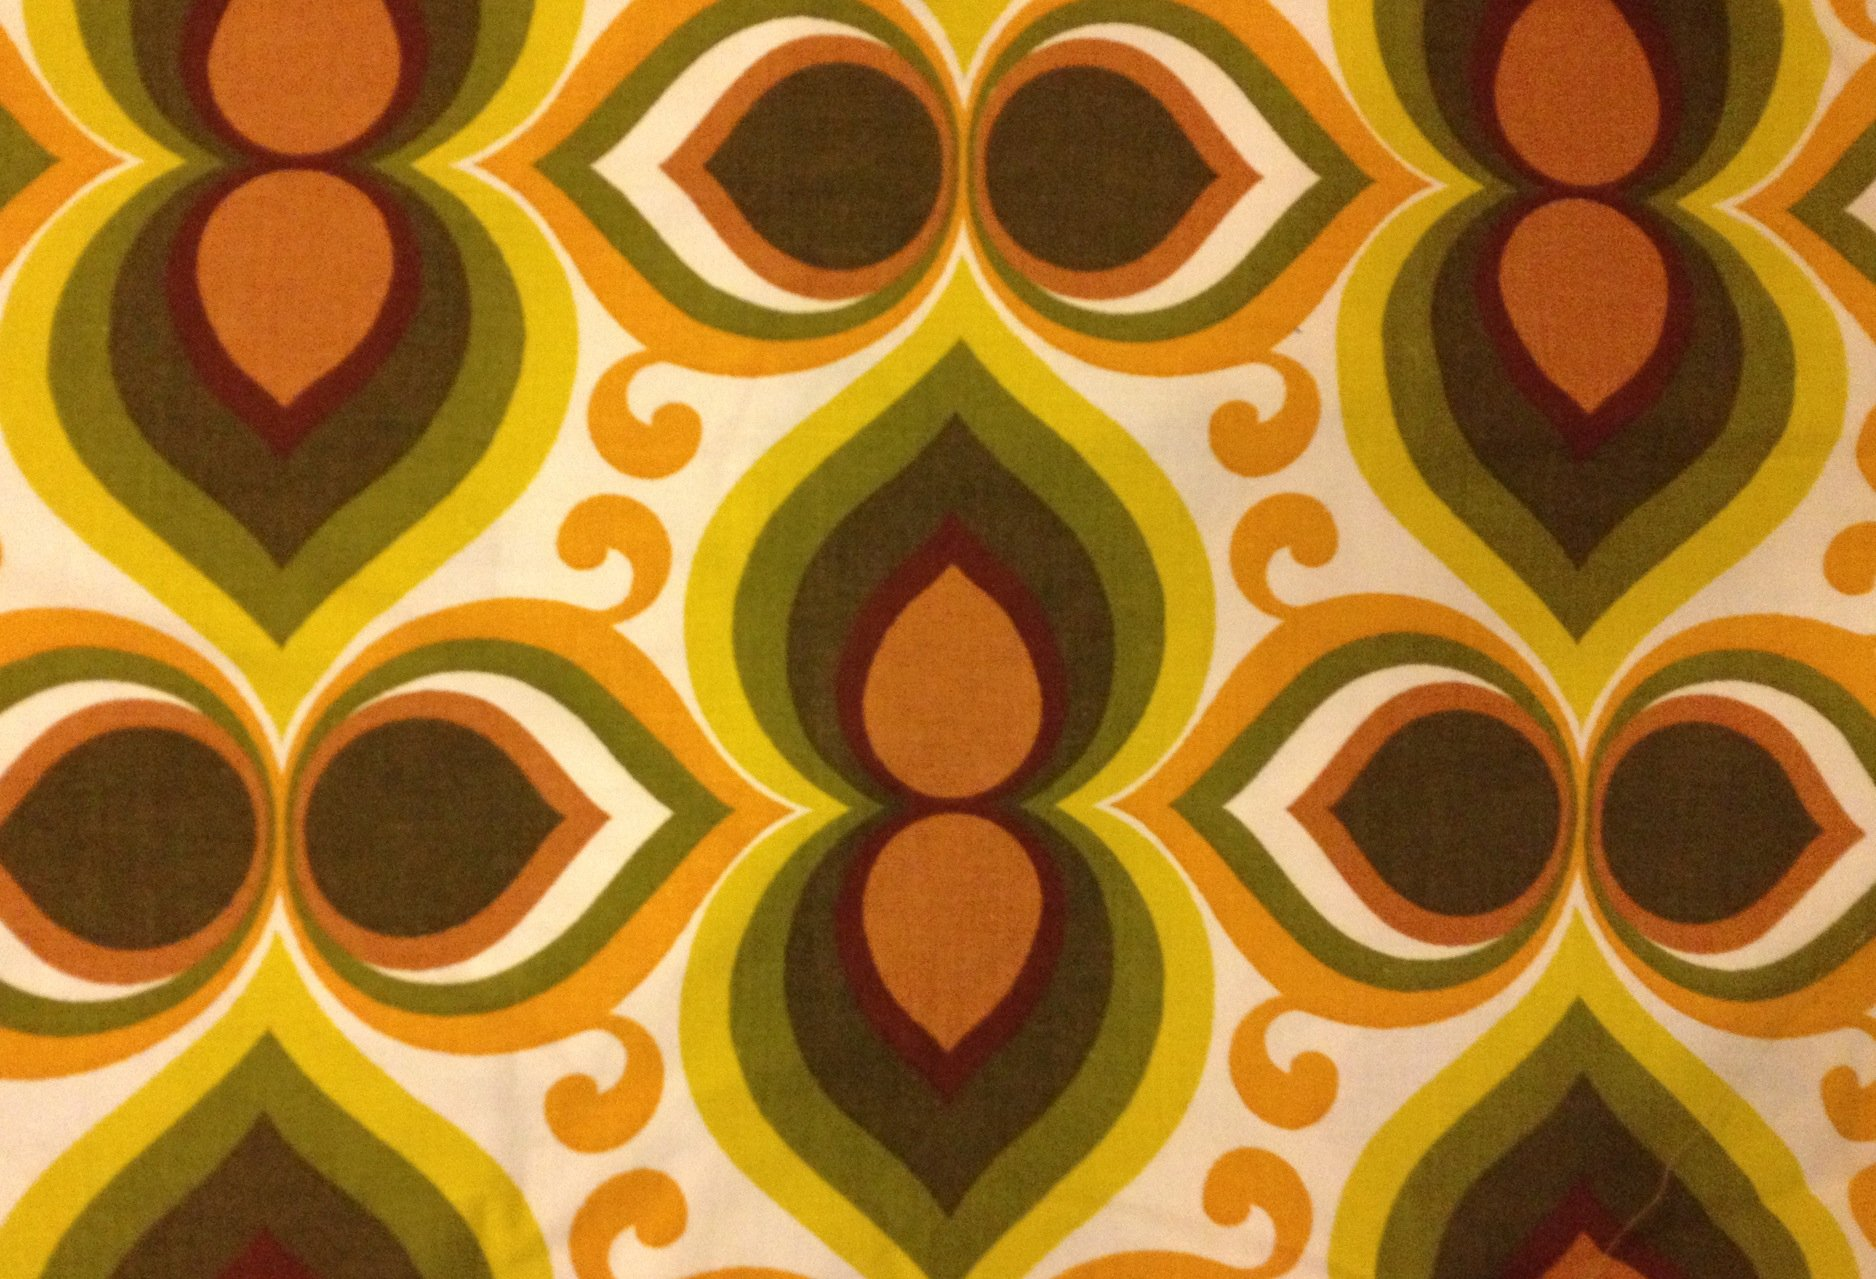 70S Wallpaper Retro Revival - WallpaperSafari